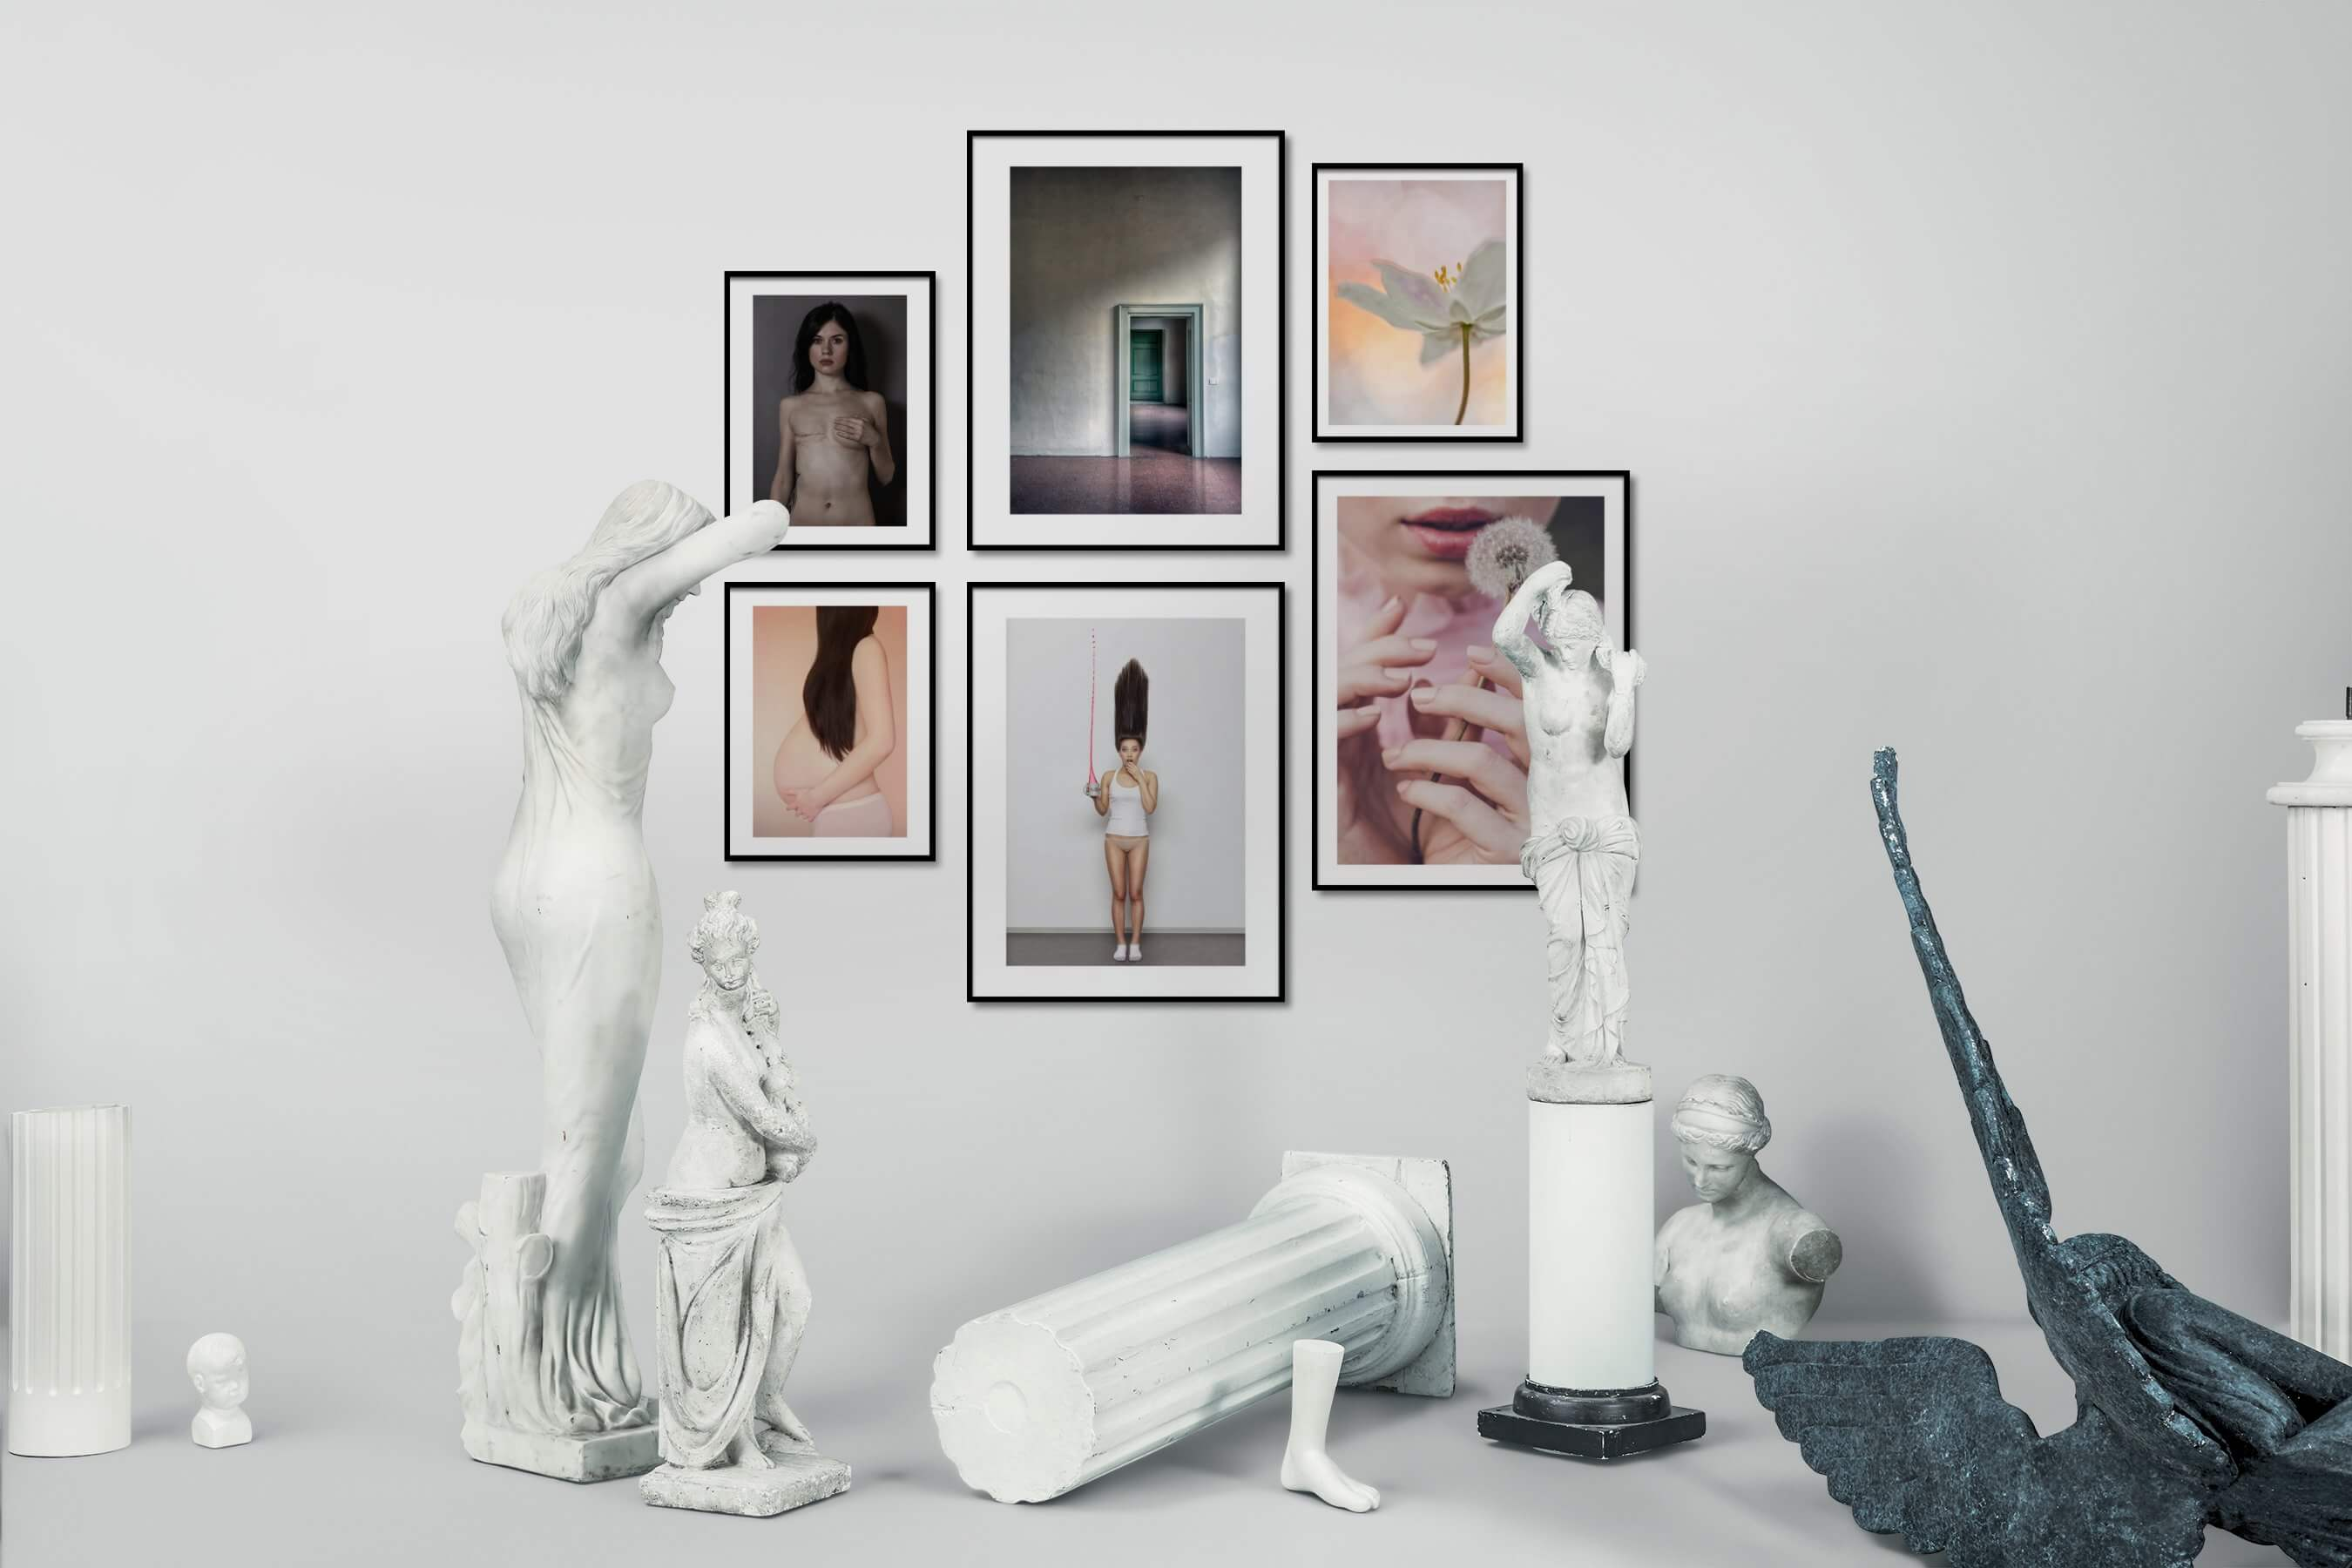 Gallery wall idea with six framed pictures arranged on a wall depicting Fashion & Beauty, For the Minimalist, For the Moderate, and Flowers & Plants